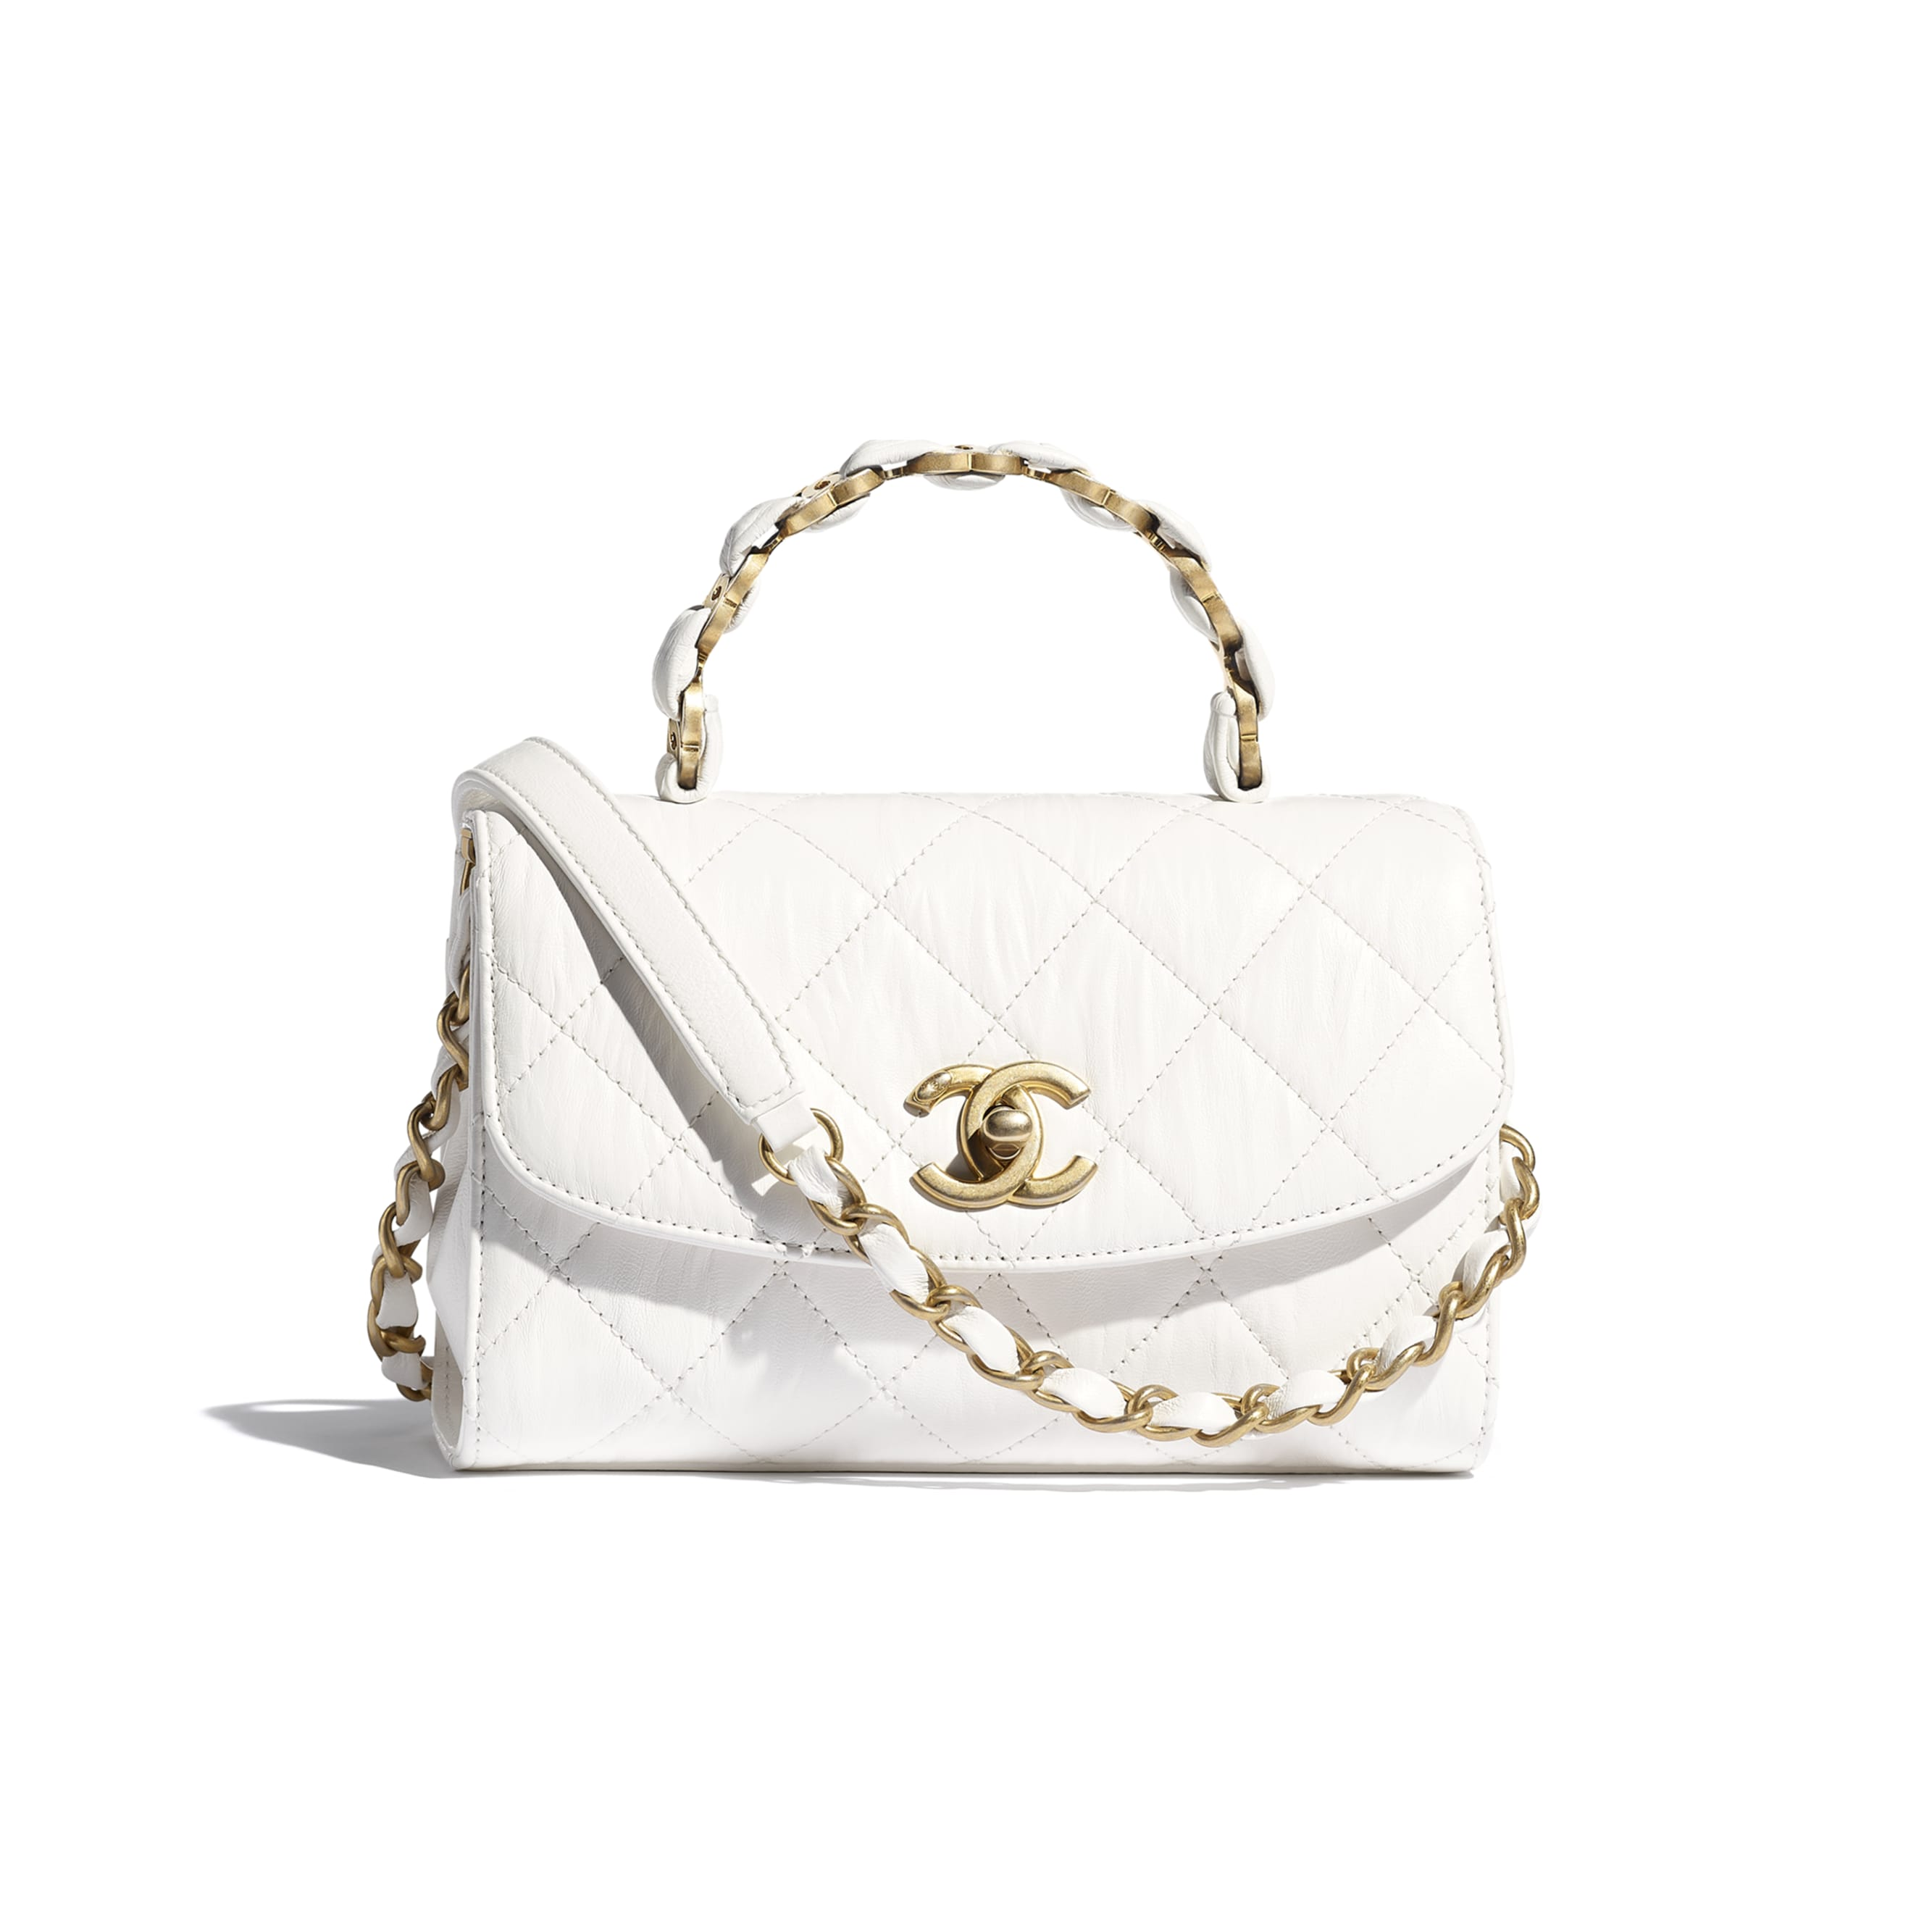 Mini Flap Bag with Top Handle - White - Crumpled Lambskin & Gold-Tone Metal - CHANEL - Default view - see standard sized version